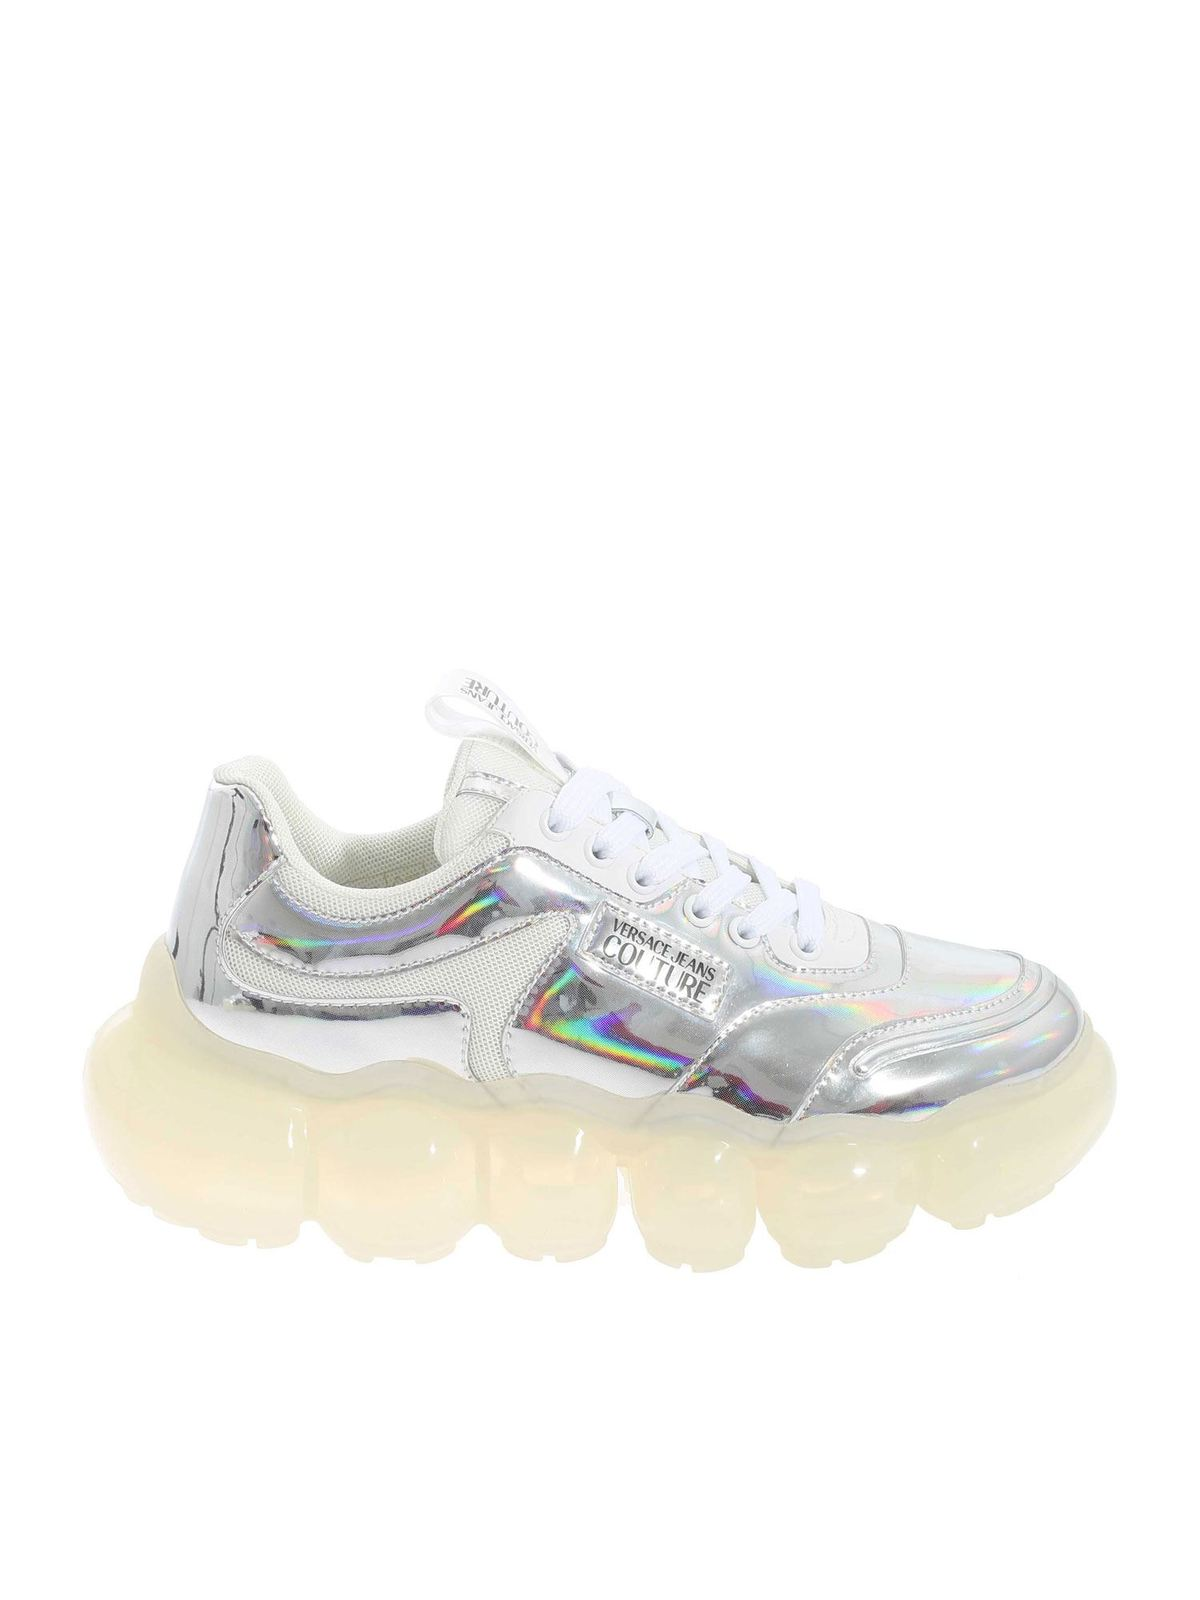 Versace Jeans Couture Bubble Sole Sneakers In Silver Color